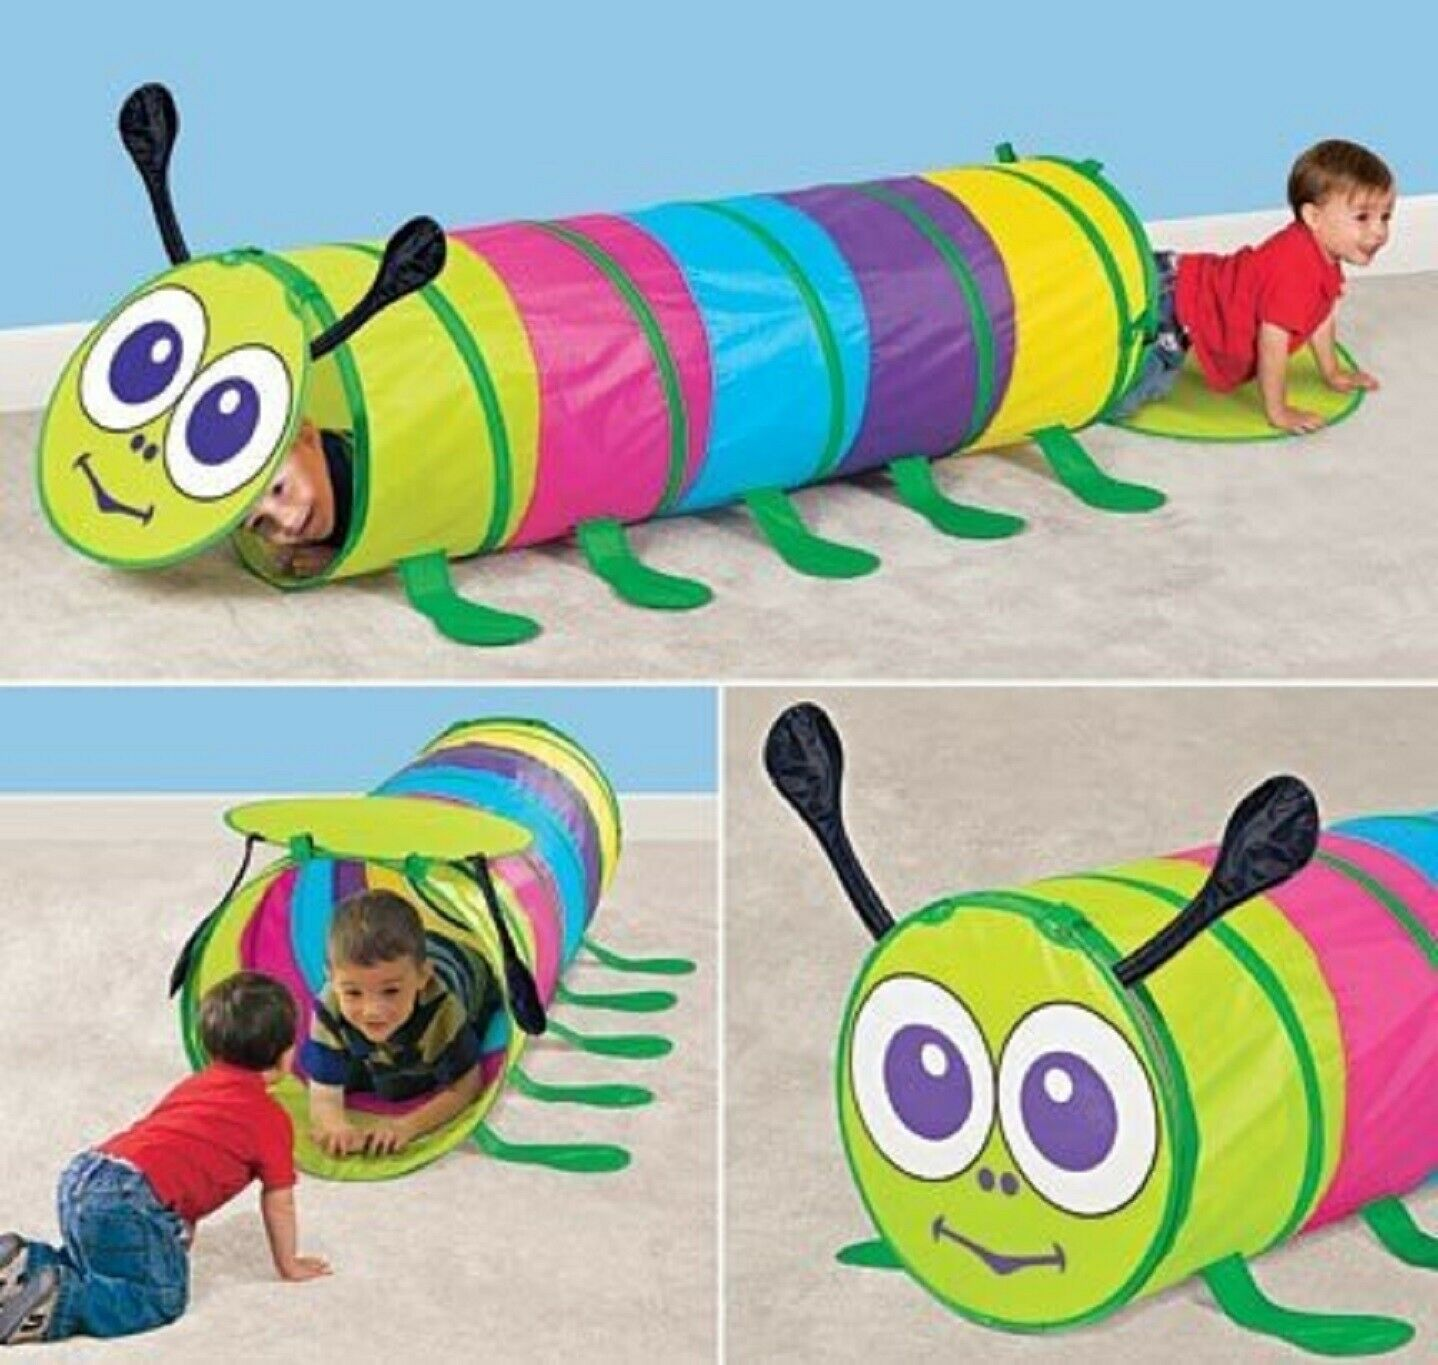 Caterpillar Tunnel Toddler Kids Toy Birth Day party Gift Play Child Colorful NIB Other Preschool & Pretend Play